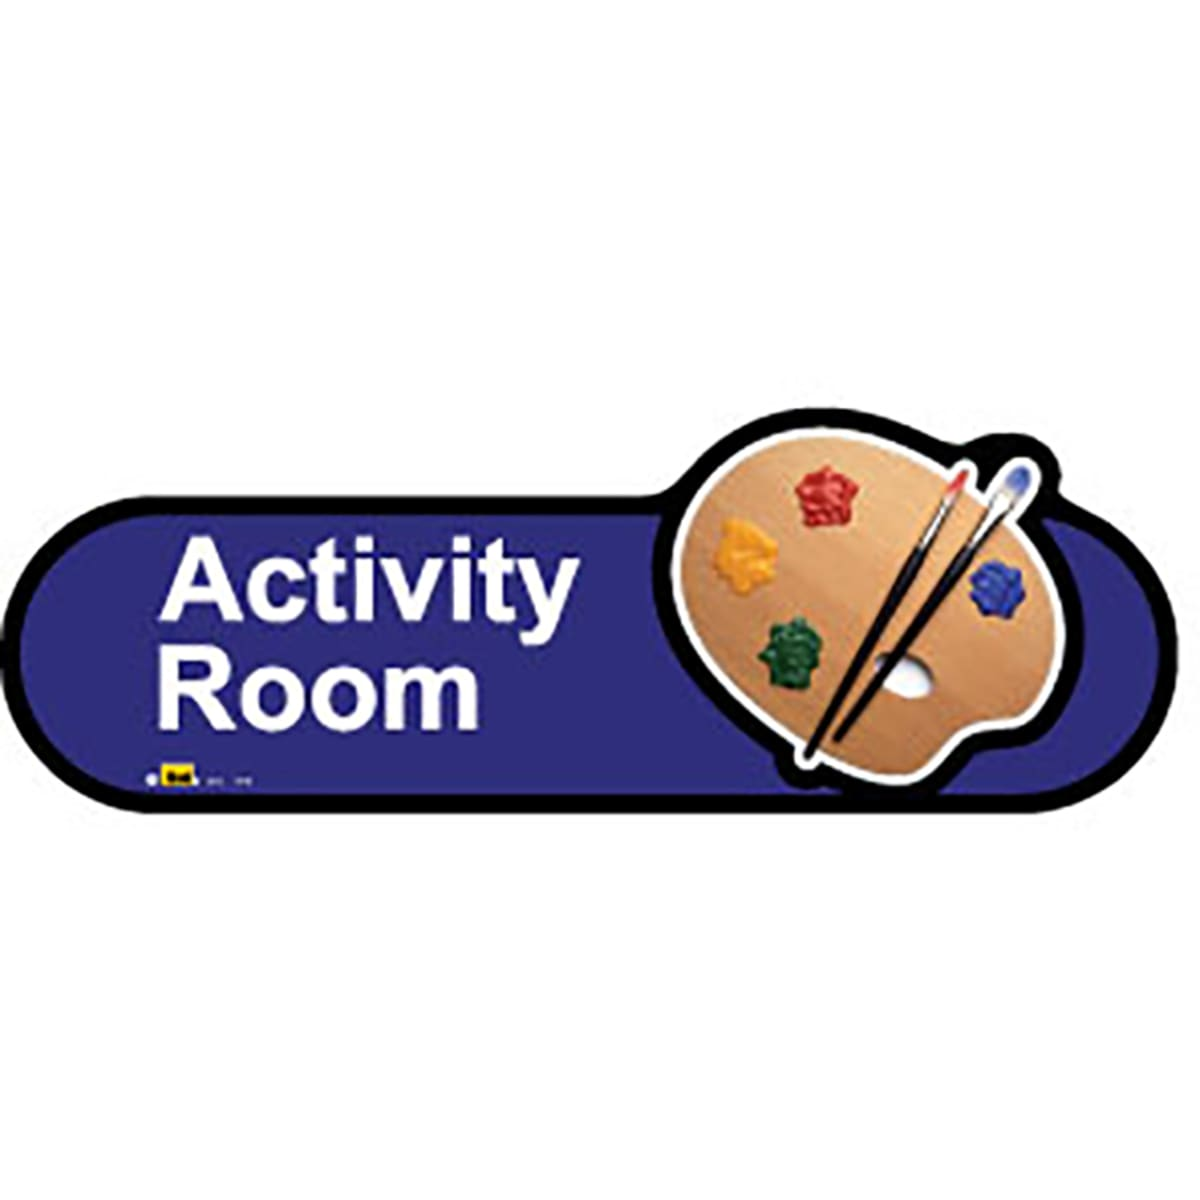 Activity Room  - Dementia Signage